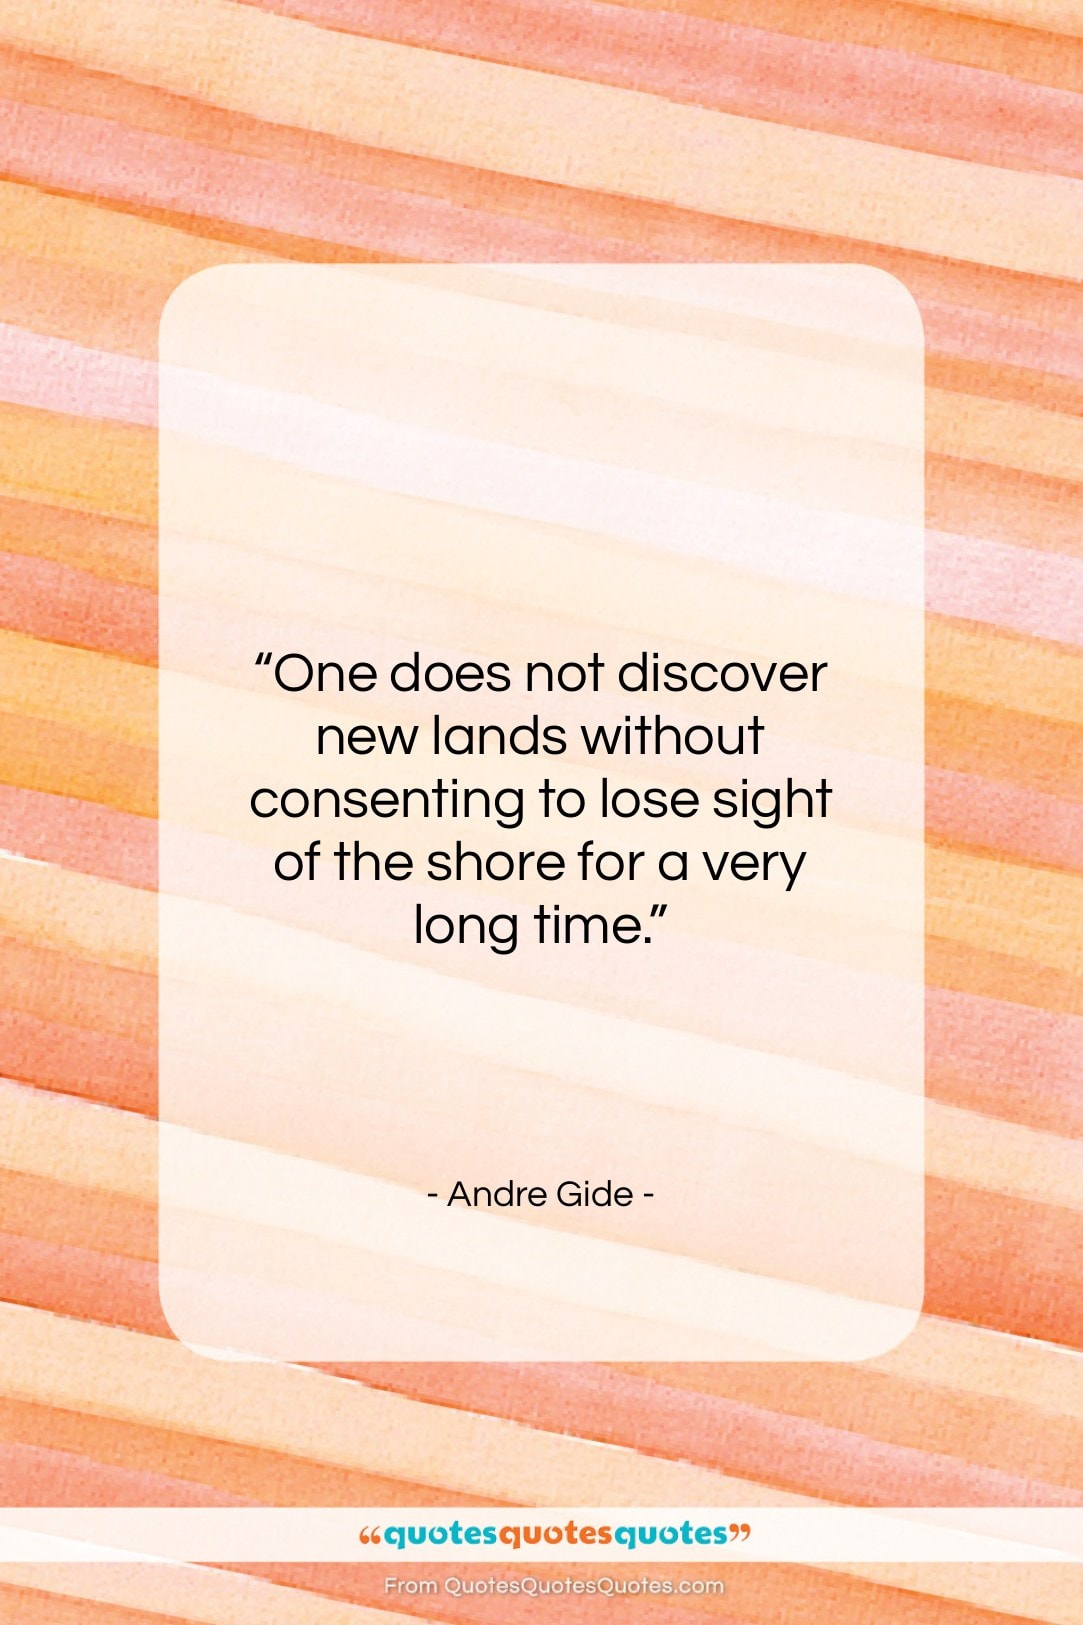 """Andre Gide quote: """"One does not discover new lands without…""""- at QuotesQuotesQuotes.com"""